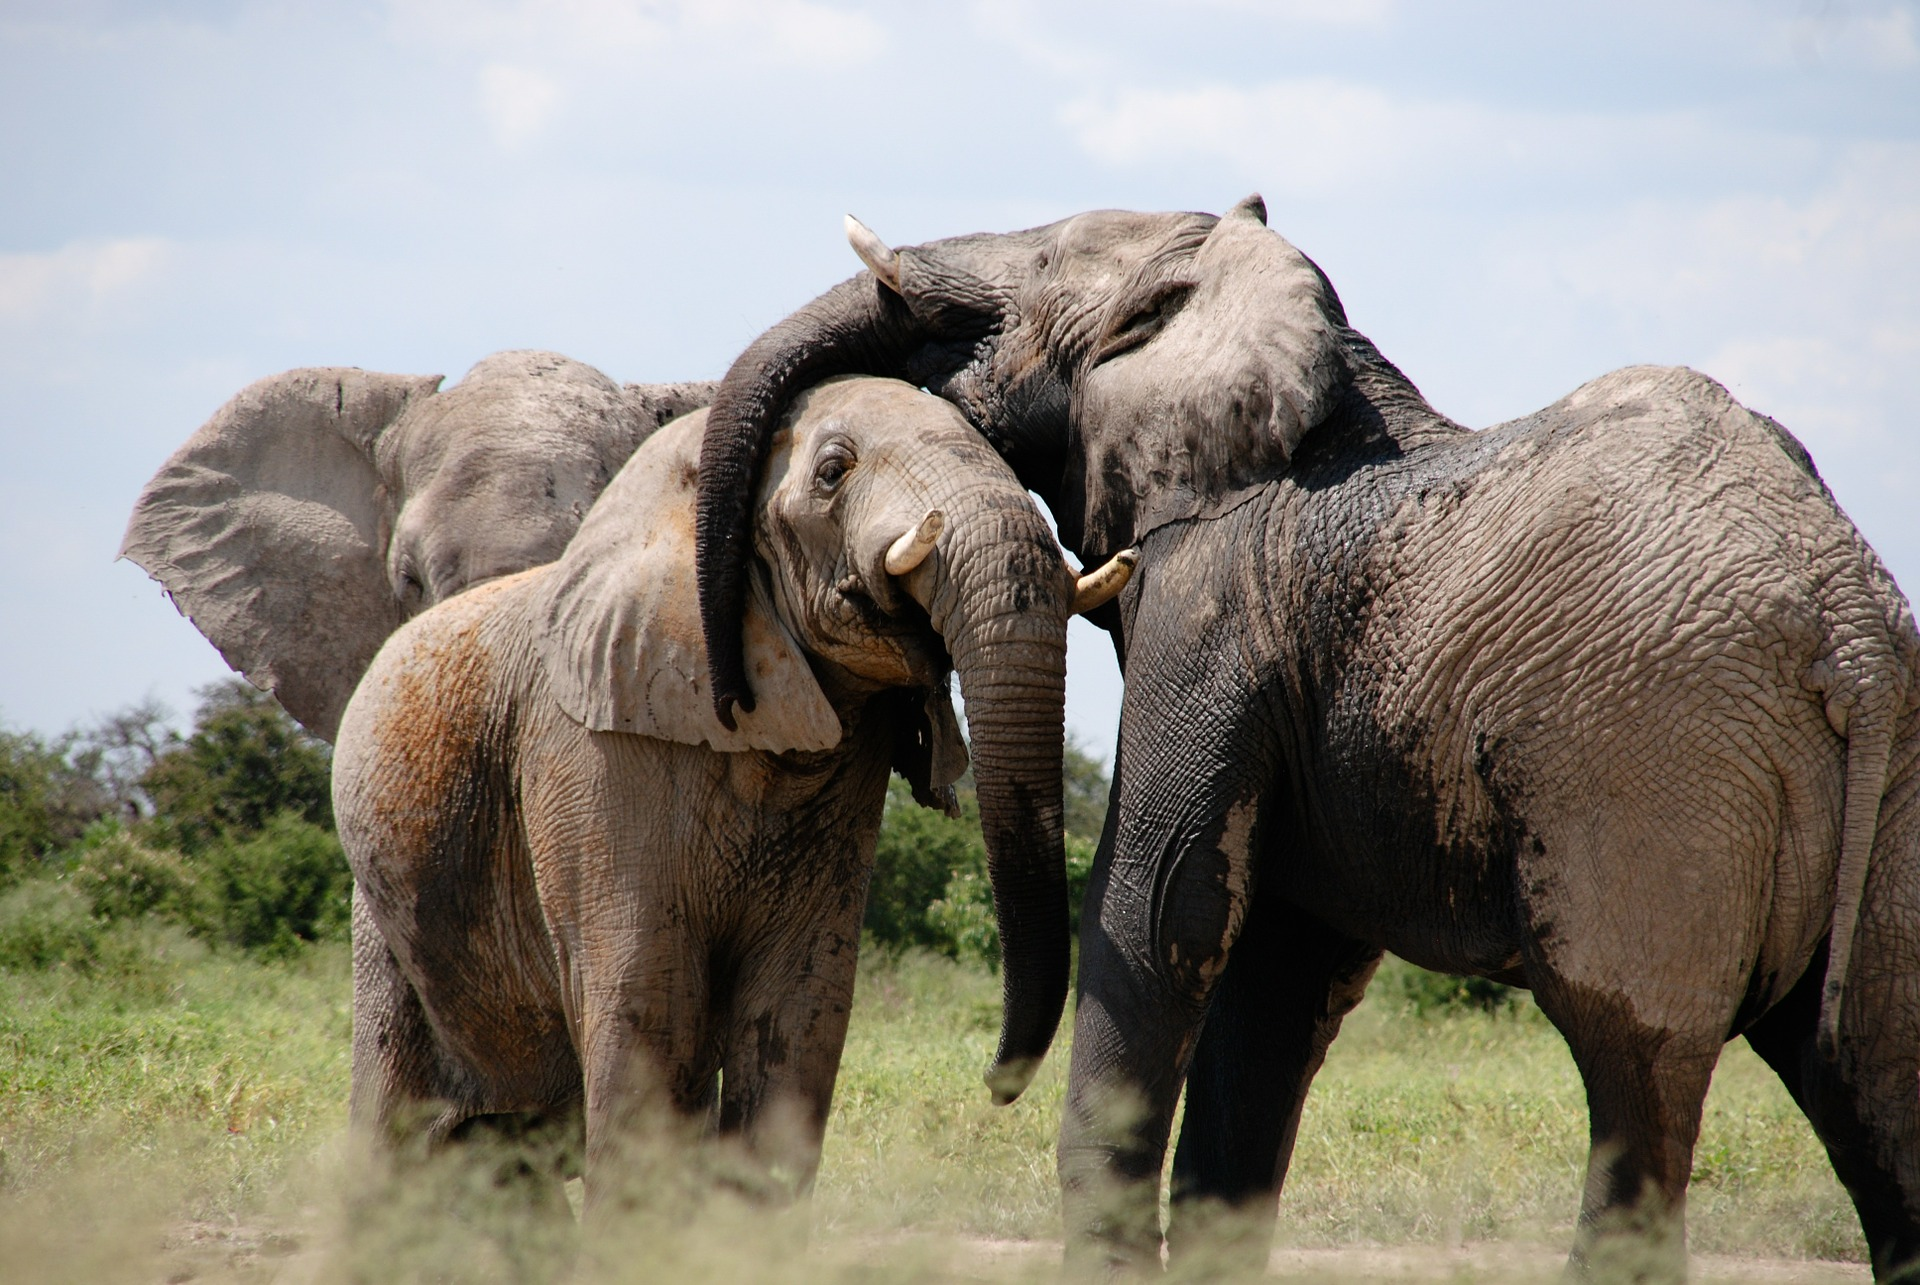 elephants evolved to have undescended testes